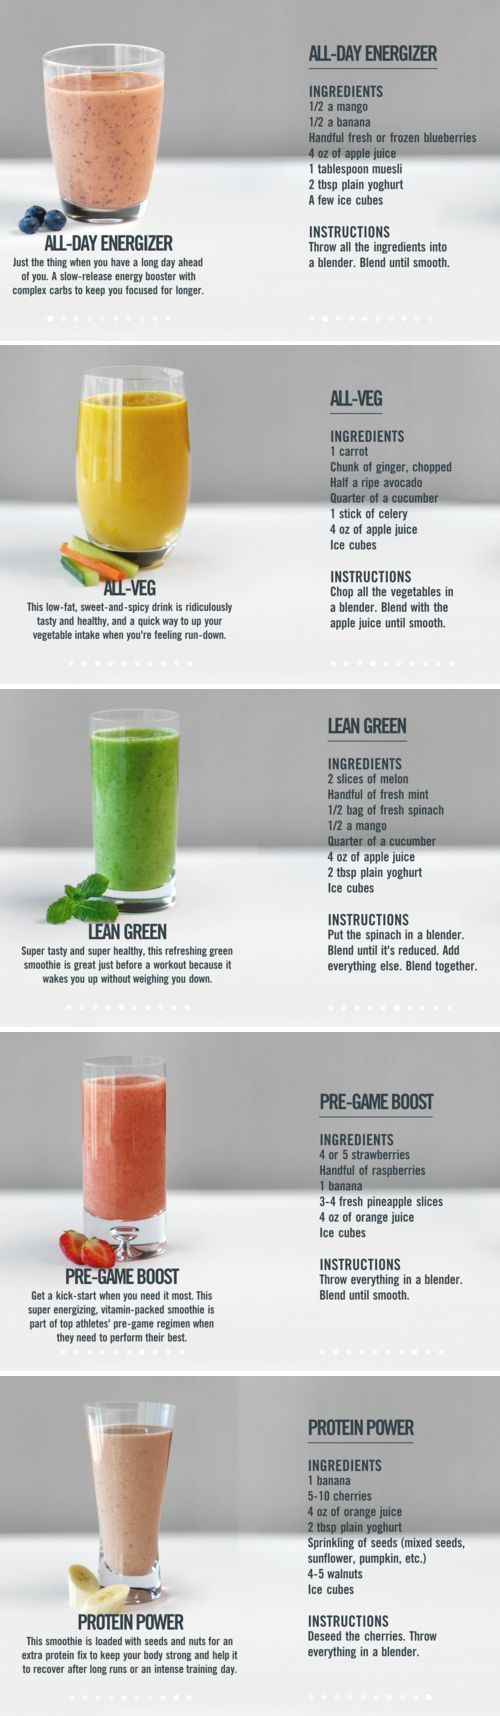 Best Slow Juicing Recipes : Best 25+ Best juicer machine ideas on Pinterest Slow juicer review, Orange juice recipes for ...